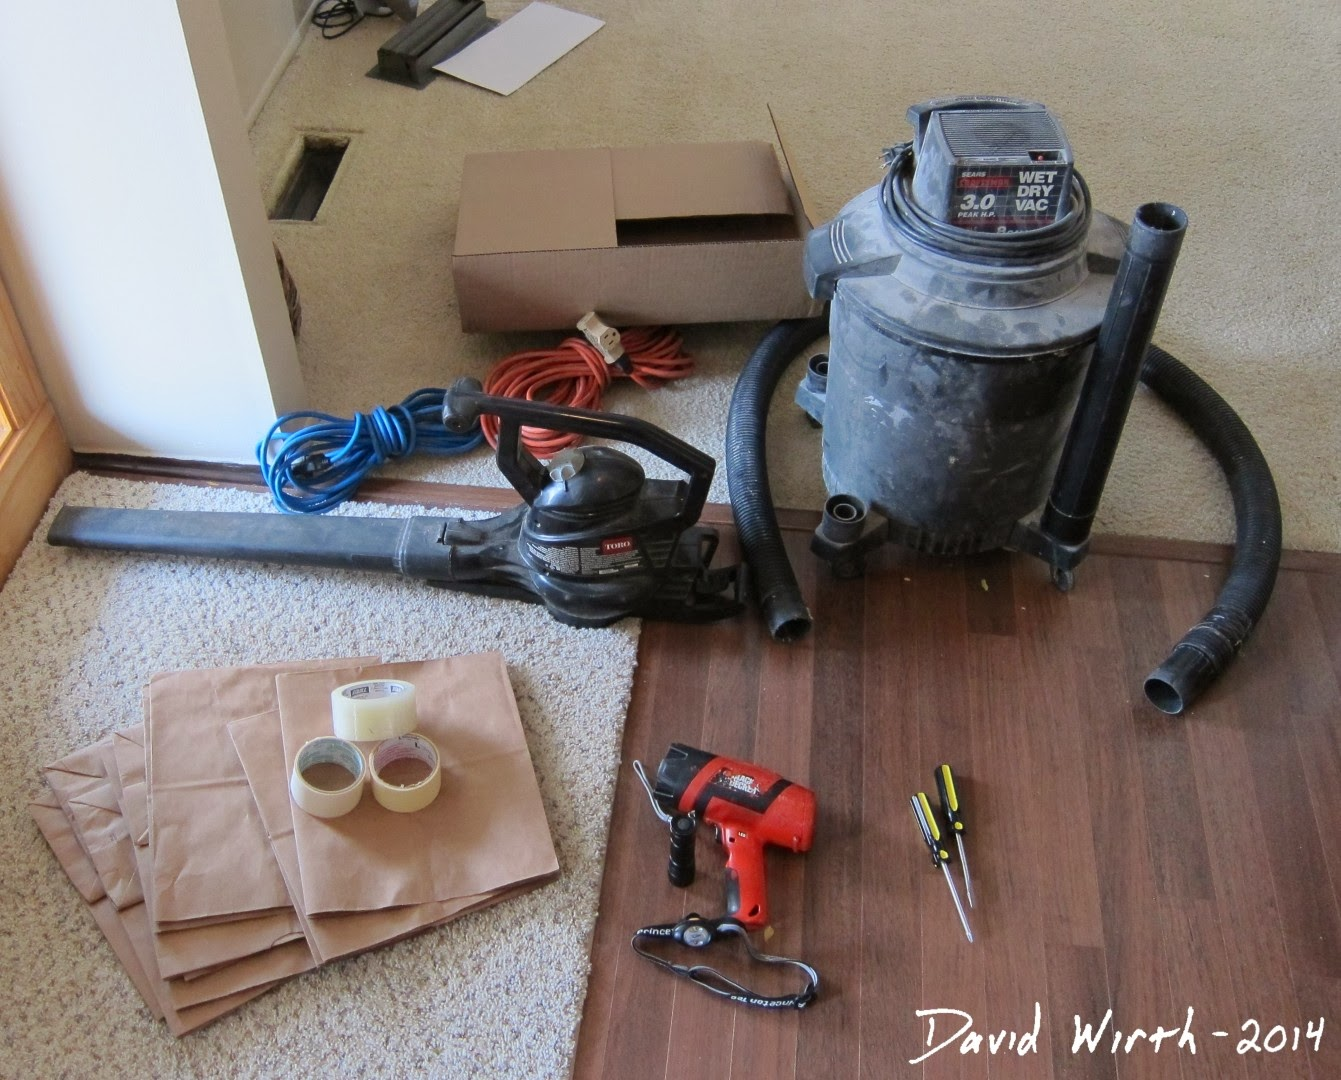 diy heating air duct cleaning equipment, do it yourself, free, how to